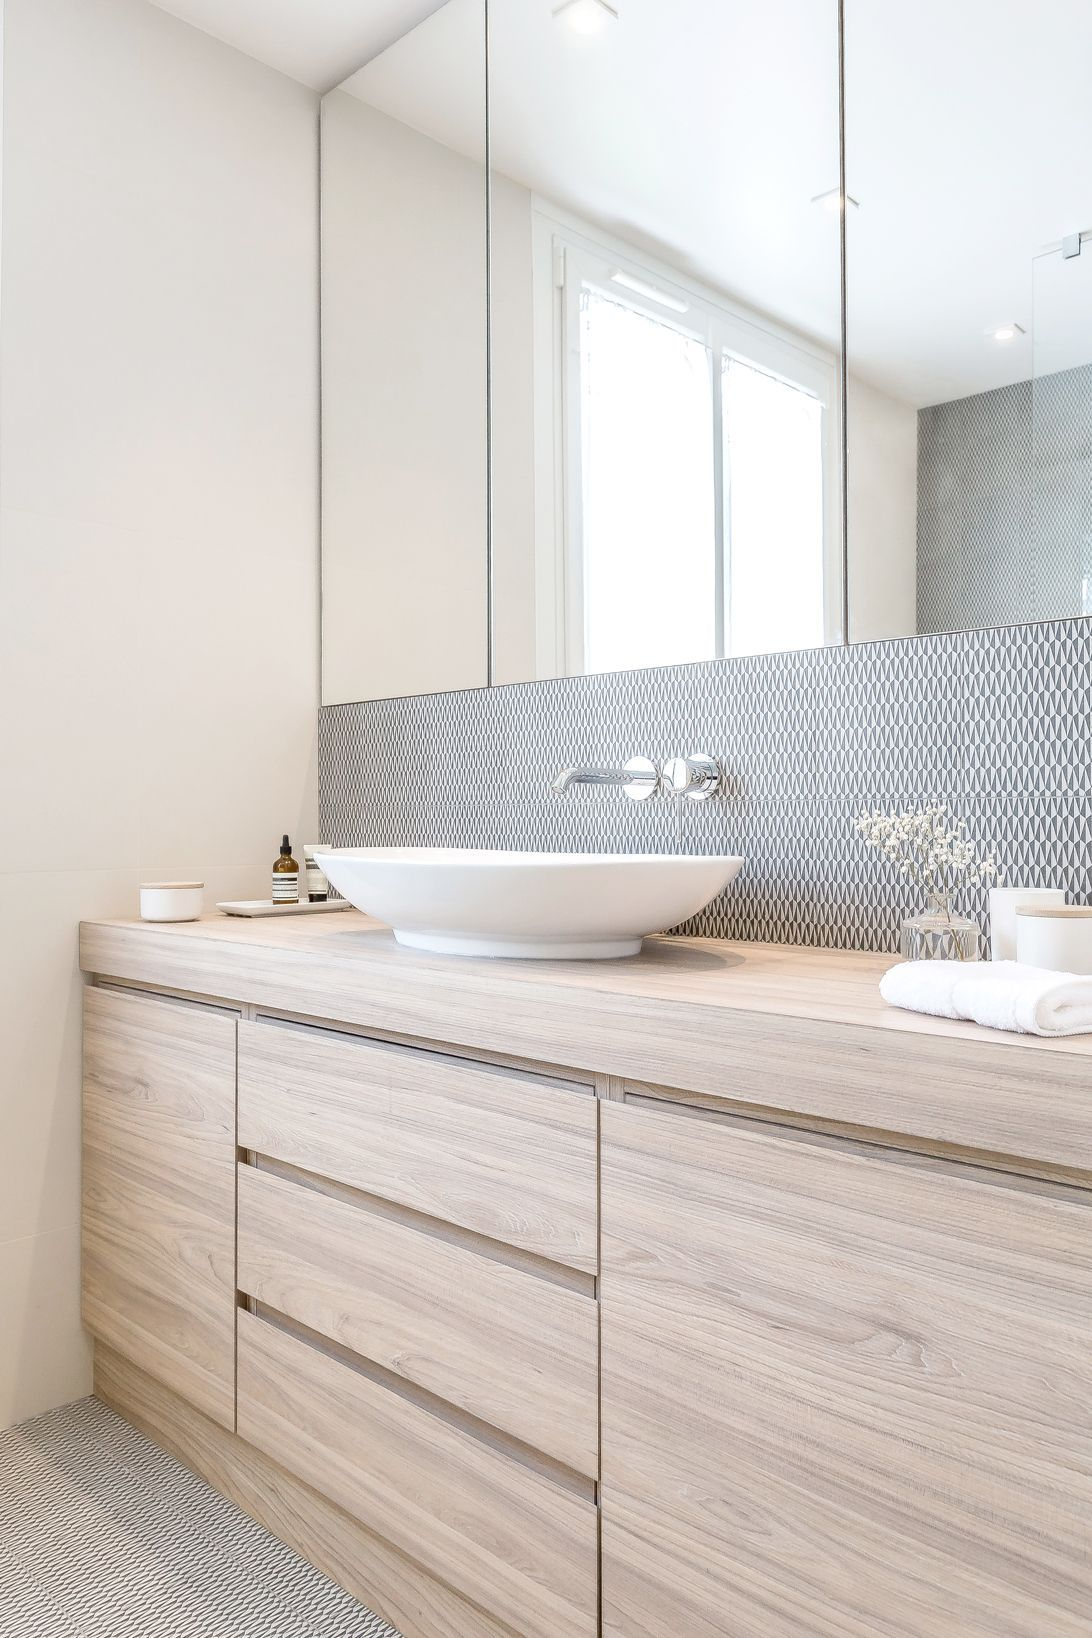 Gentil 6 Tips To Make Your Bathroom Renovation Look Amazing